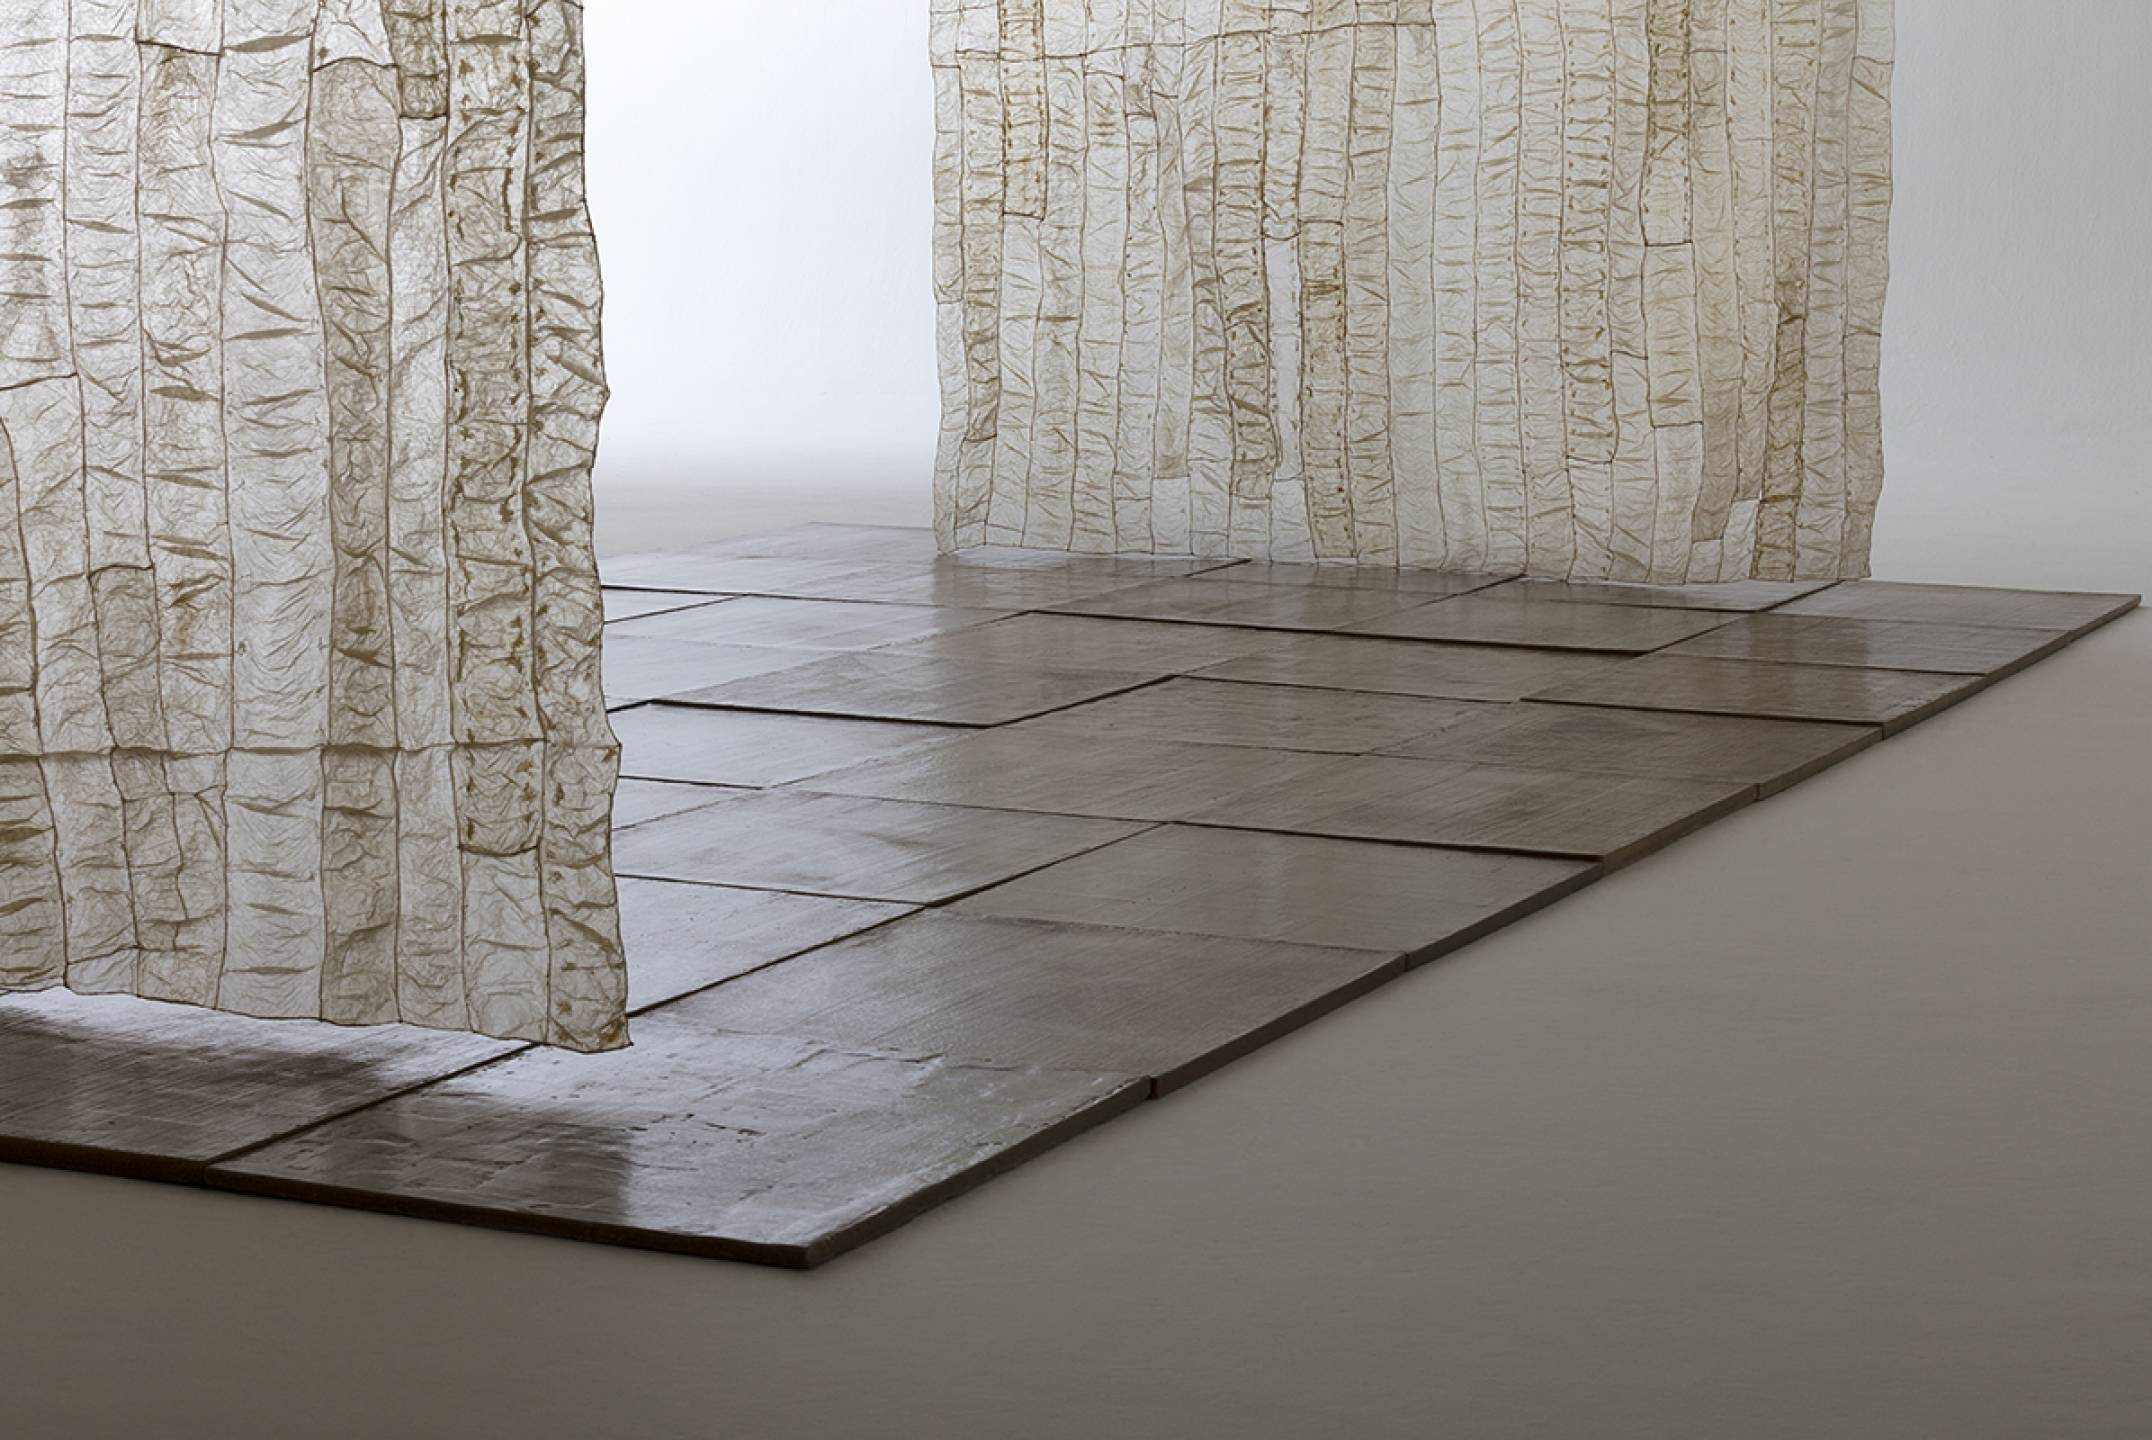 Paloma Bosquê, <em>Field</em>, 2012-2017, 40 beeswax plates, 2 panels of dried ox tripe and brass rods, 500 × 512 × 270 cm - Mendes Wood DM